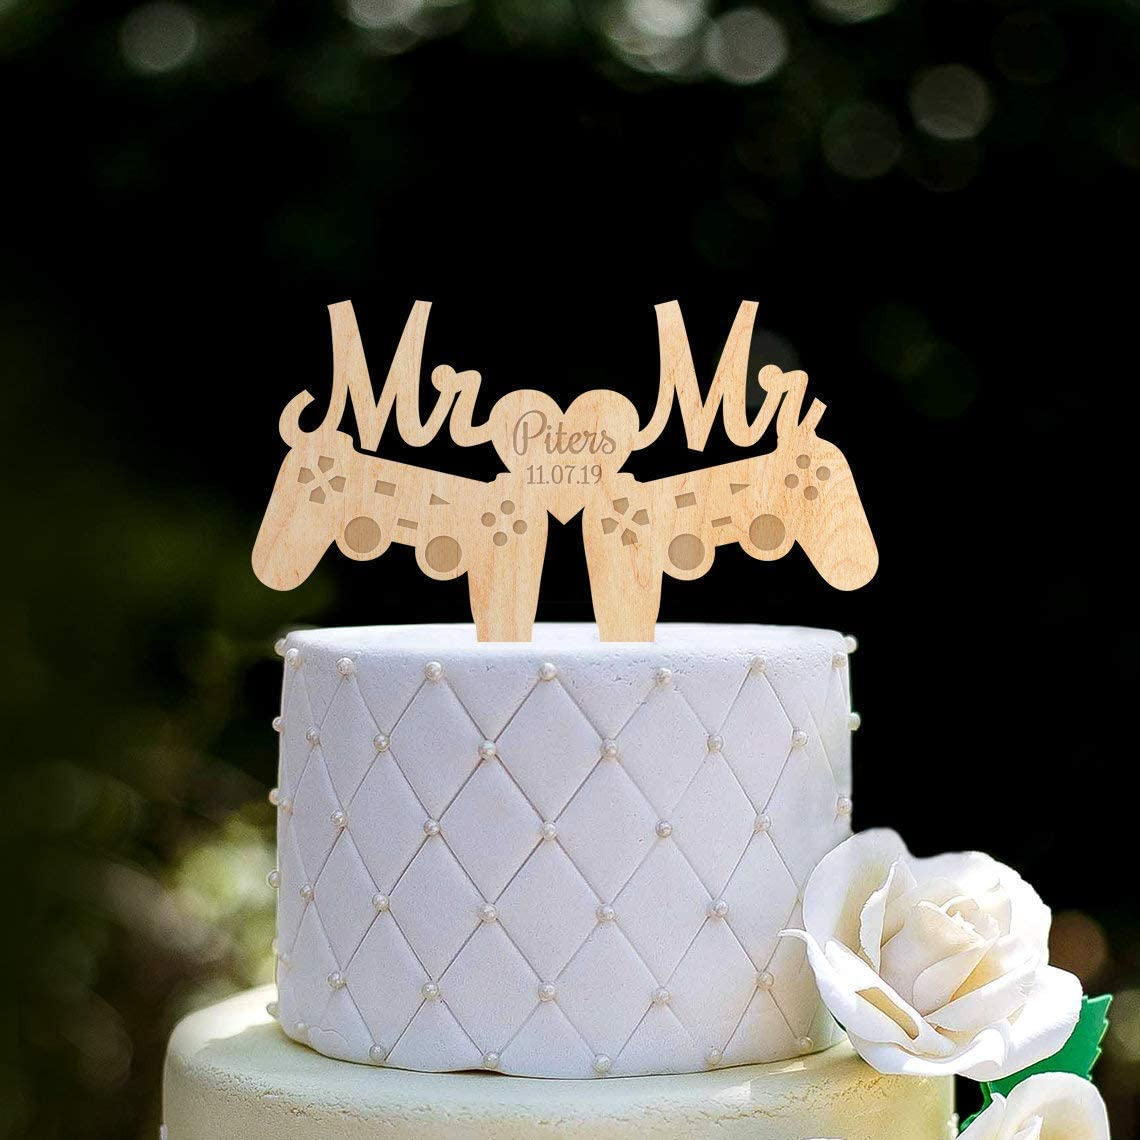 Remarkable Video Game Wedding Mr And Mr Toppergamer Wedding Gay Cake Funny Birthday Cards Online Overcheapnameinfo